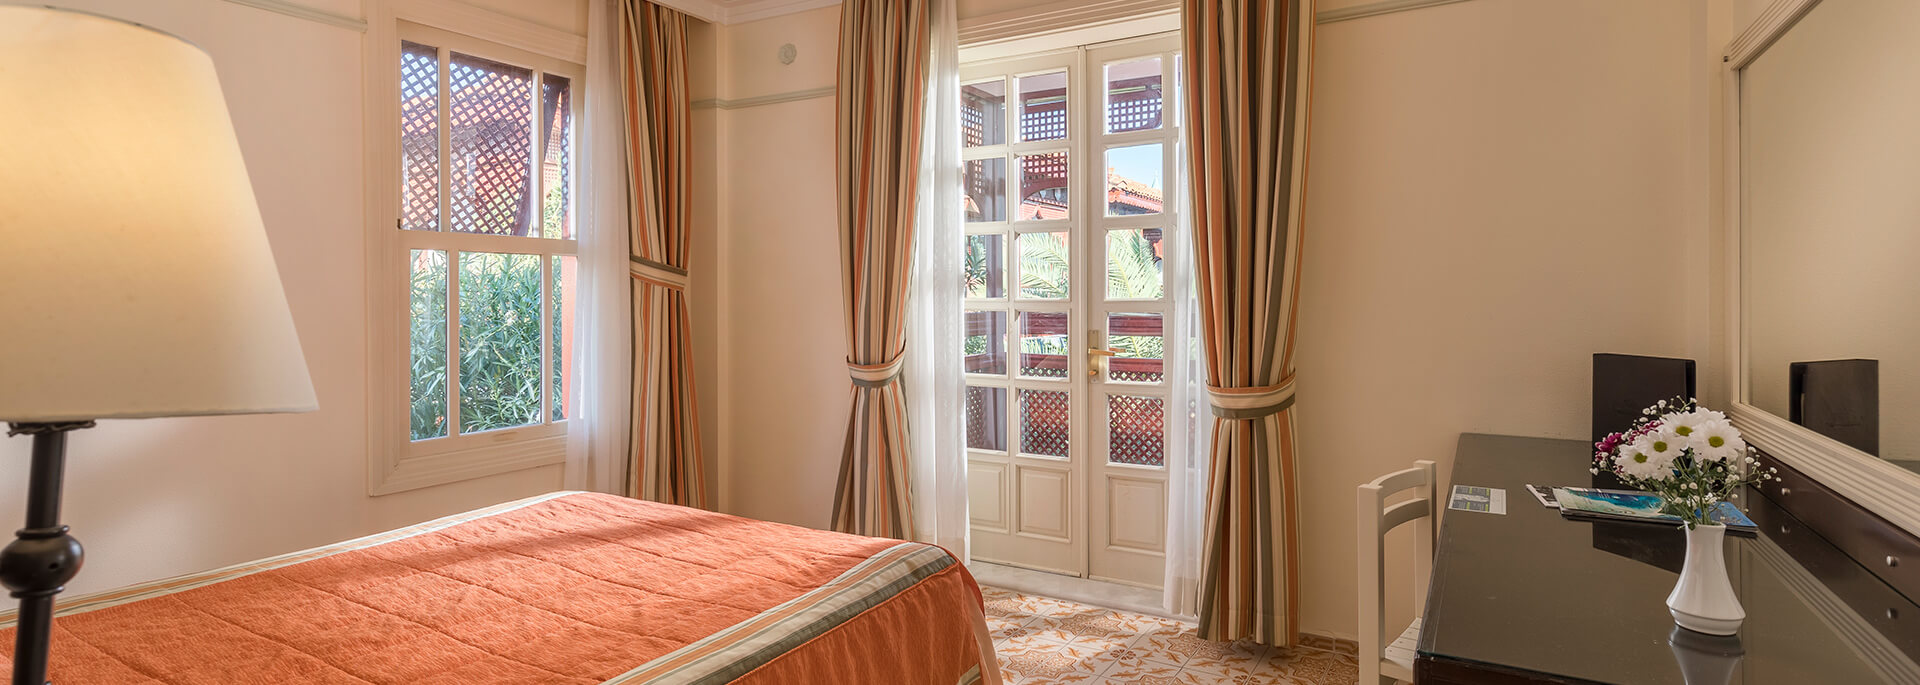 Ali Bey Park Manavgat - Family Rooms